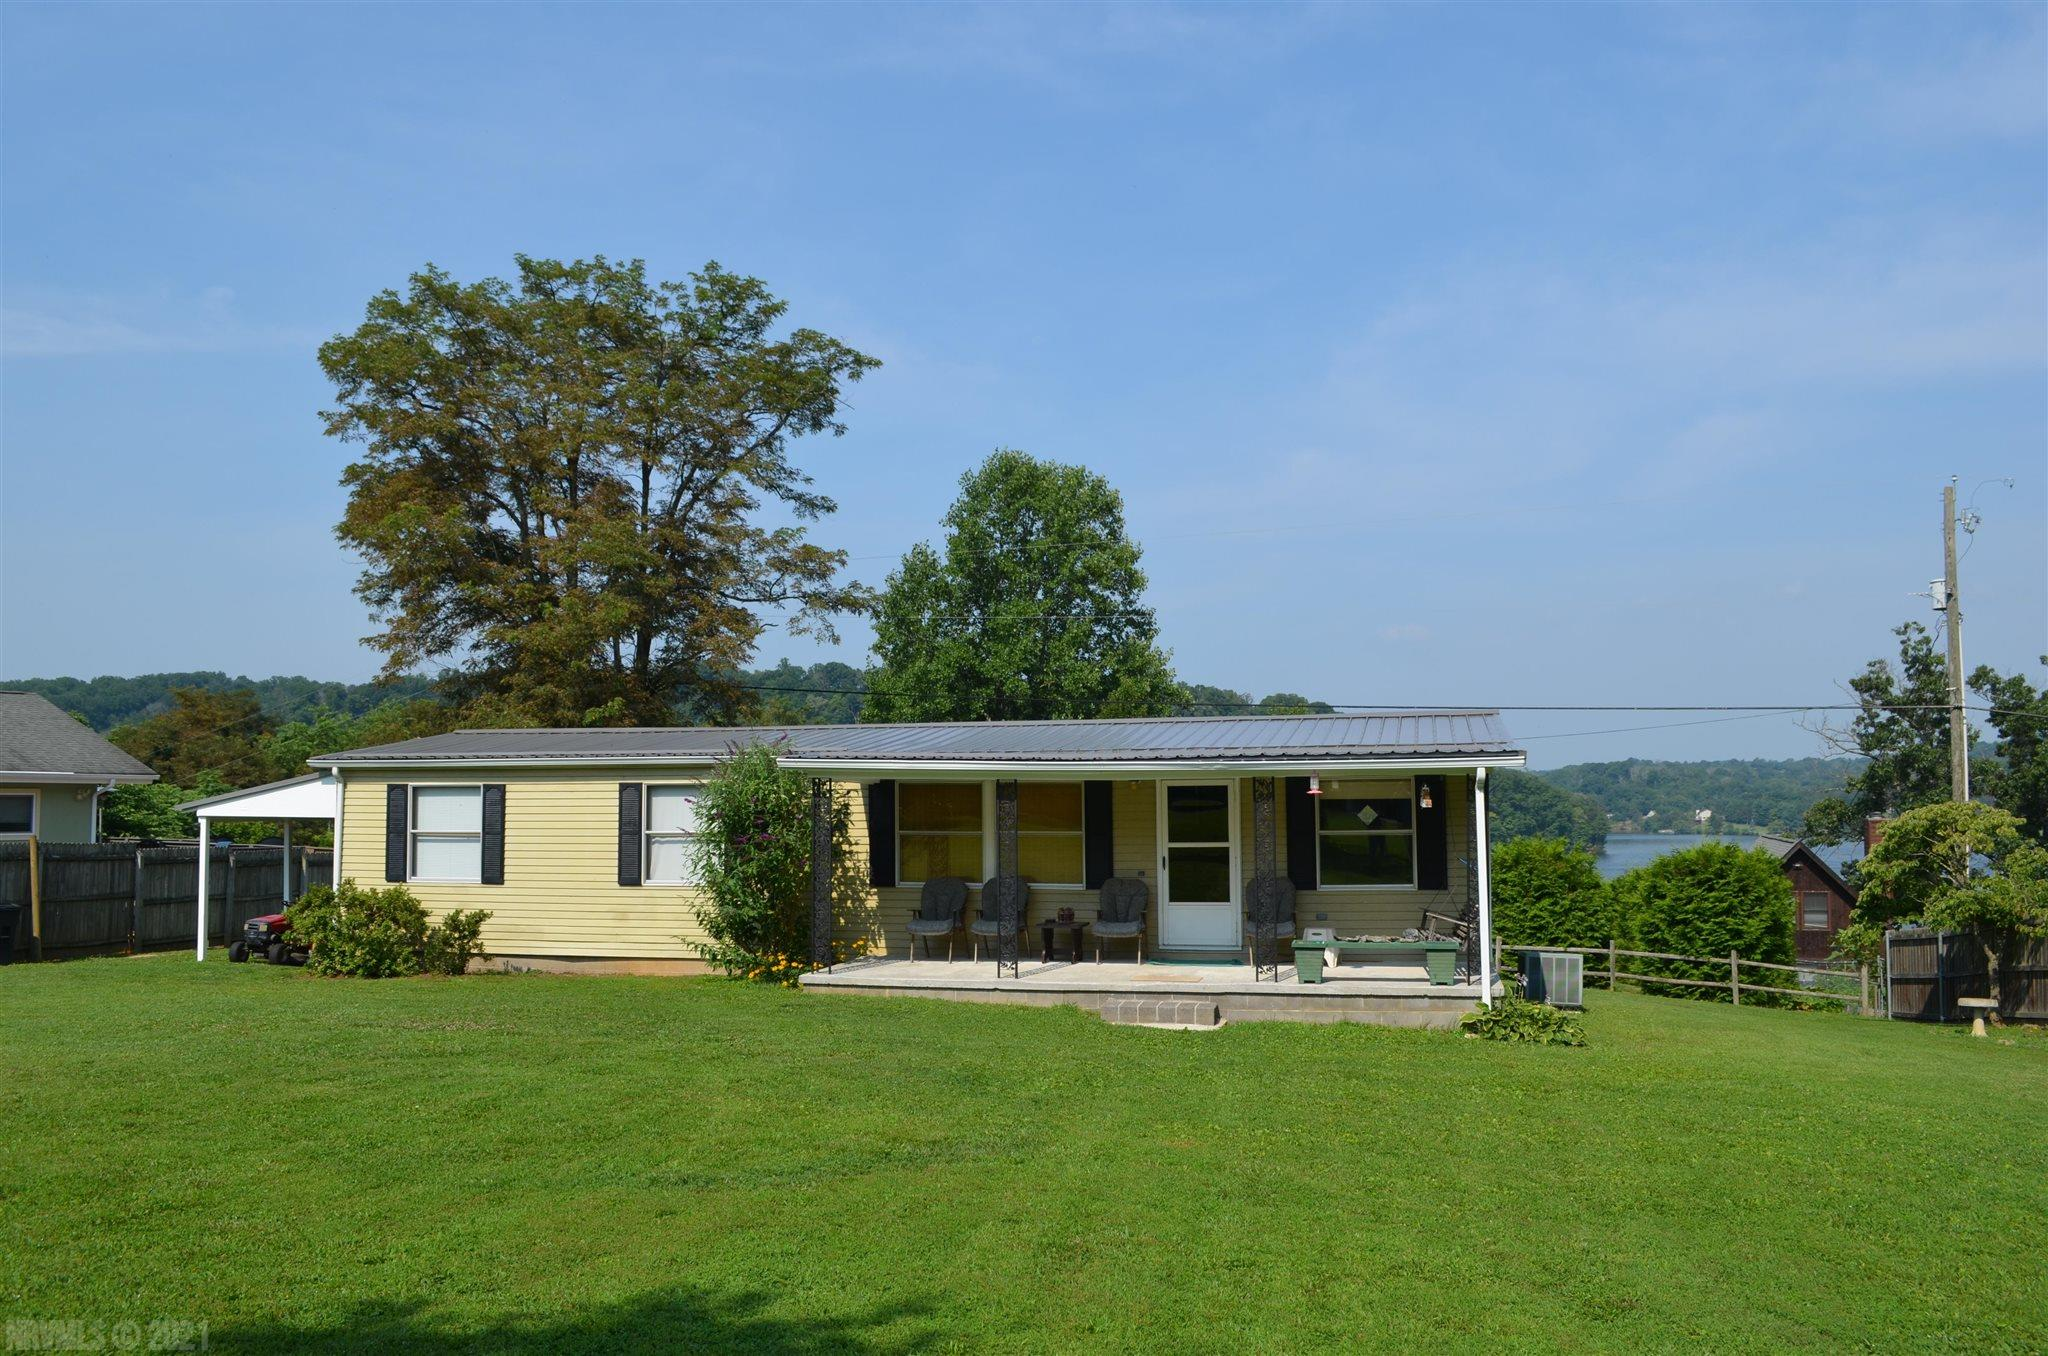 This 3 bedroom Ranch Style modular home sits on a very nice, level, half-acre lot, within walking distance of a shared common area on Claytor Lake. This home also has its own dock suitable for parking two boats.  Come enjoy the beautiful view and personal lake access. Plenty of garden space, nice large deck for entertaining or just to sit and relax.  New Roof and well pump 2020.  Only minutes away Dehaven Park with public boat launch. You can live here year round, use it as a rental, or make it your personal weekend get-away.  Don't miss this opportunity and make